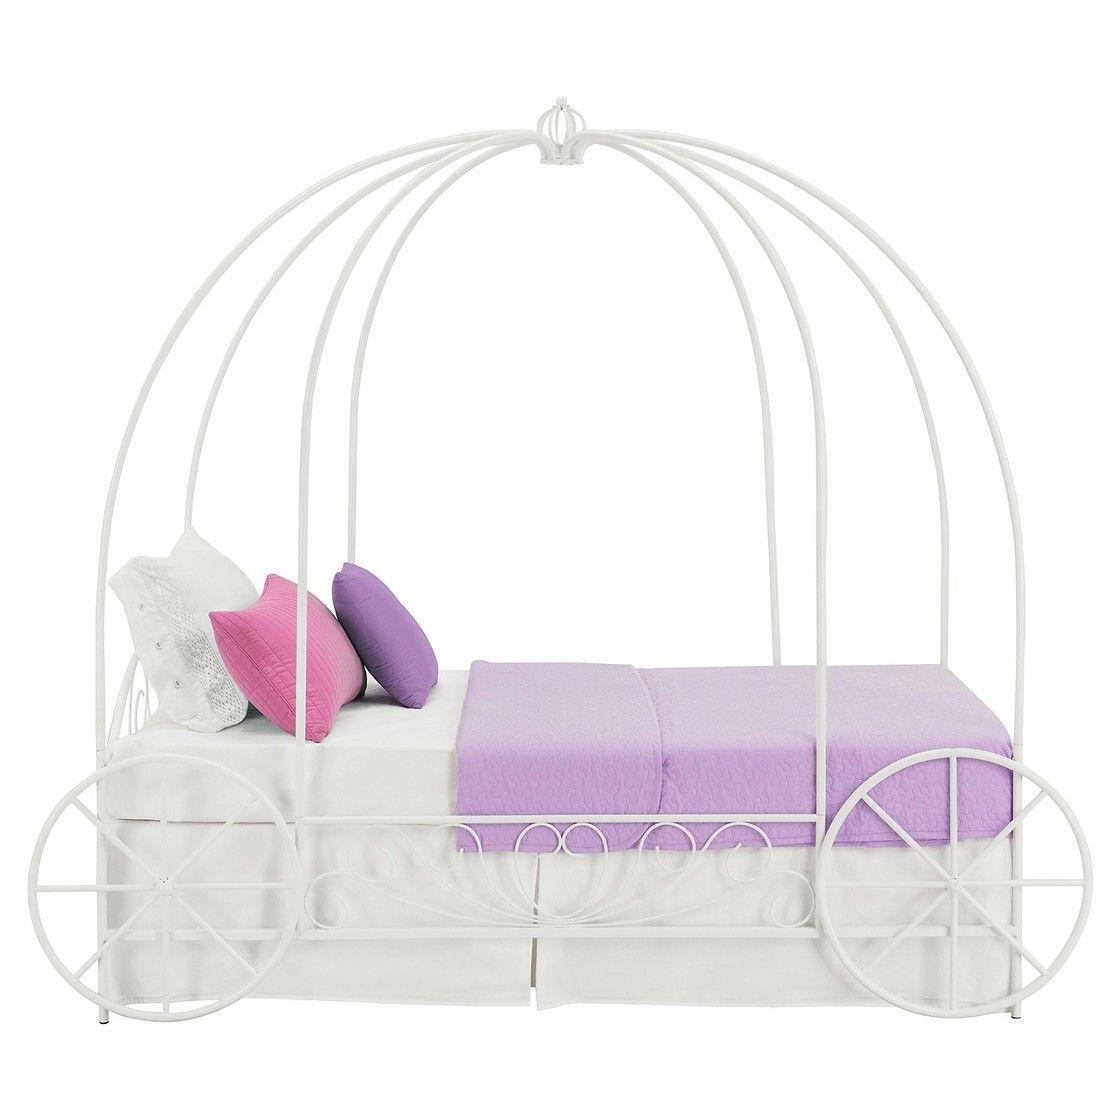 Metal Carriage Bed - Twin - White -Dorel Home Products